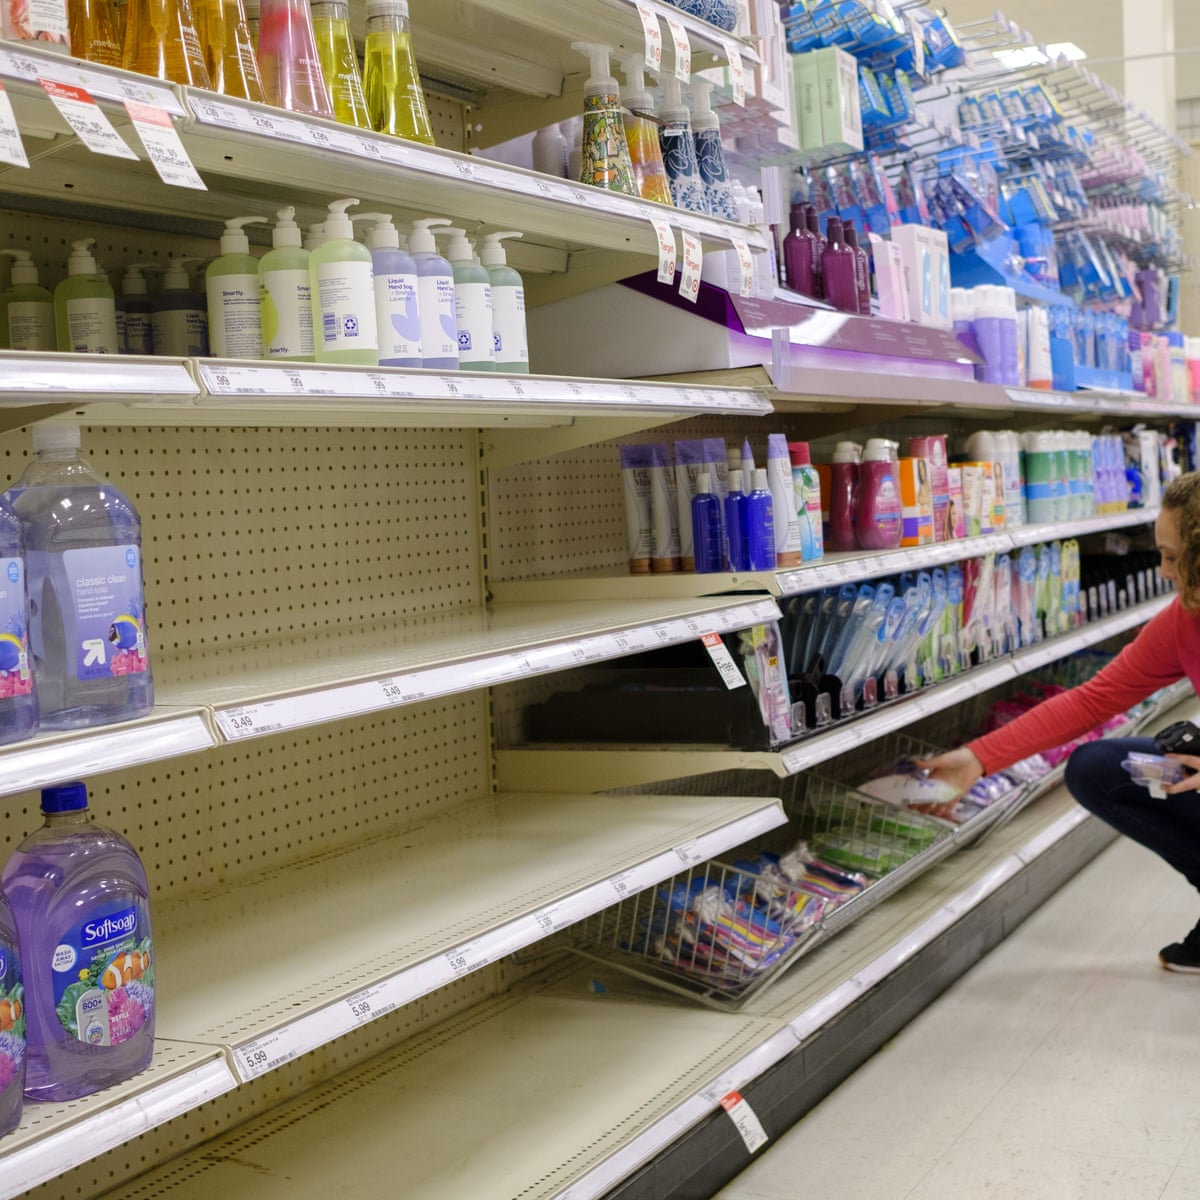 Target and Walmart aren't protecting staff amid pandemic, workers say |  Walmart | The Guardian